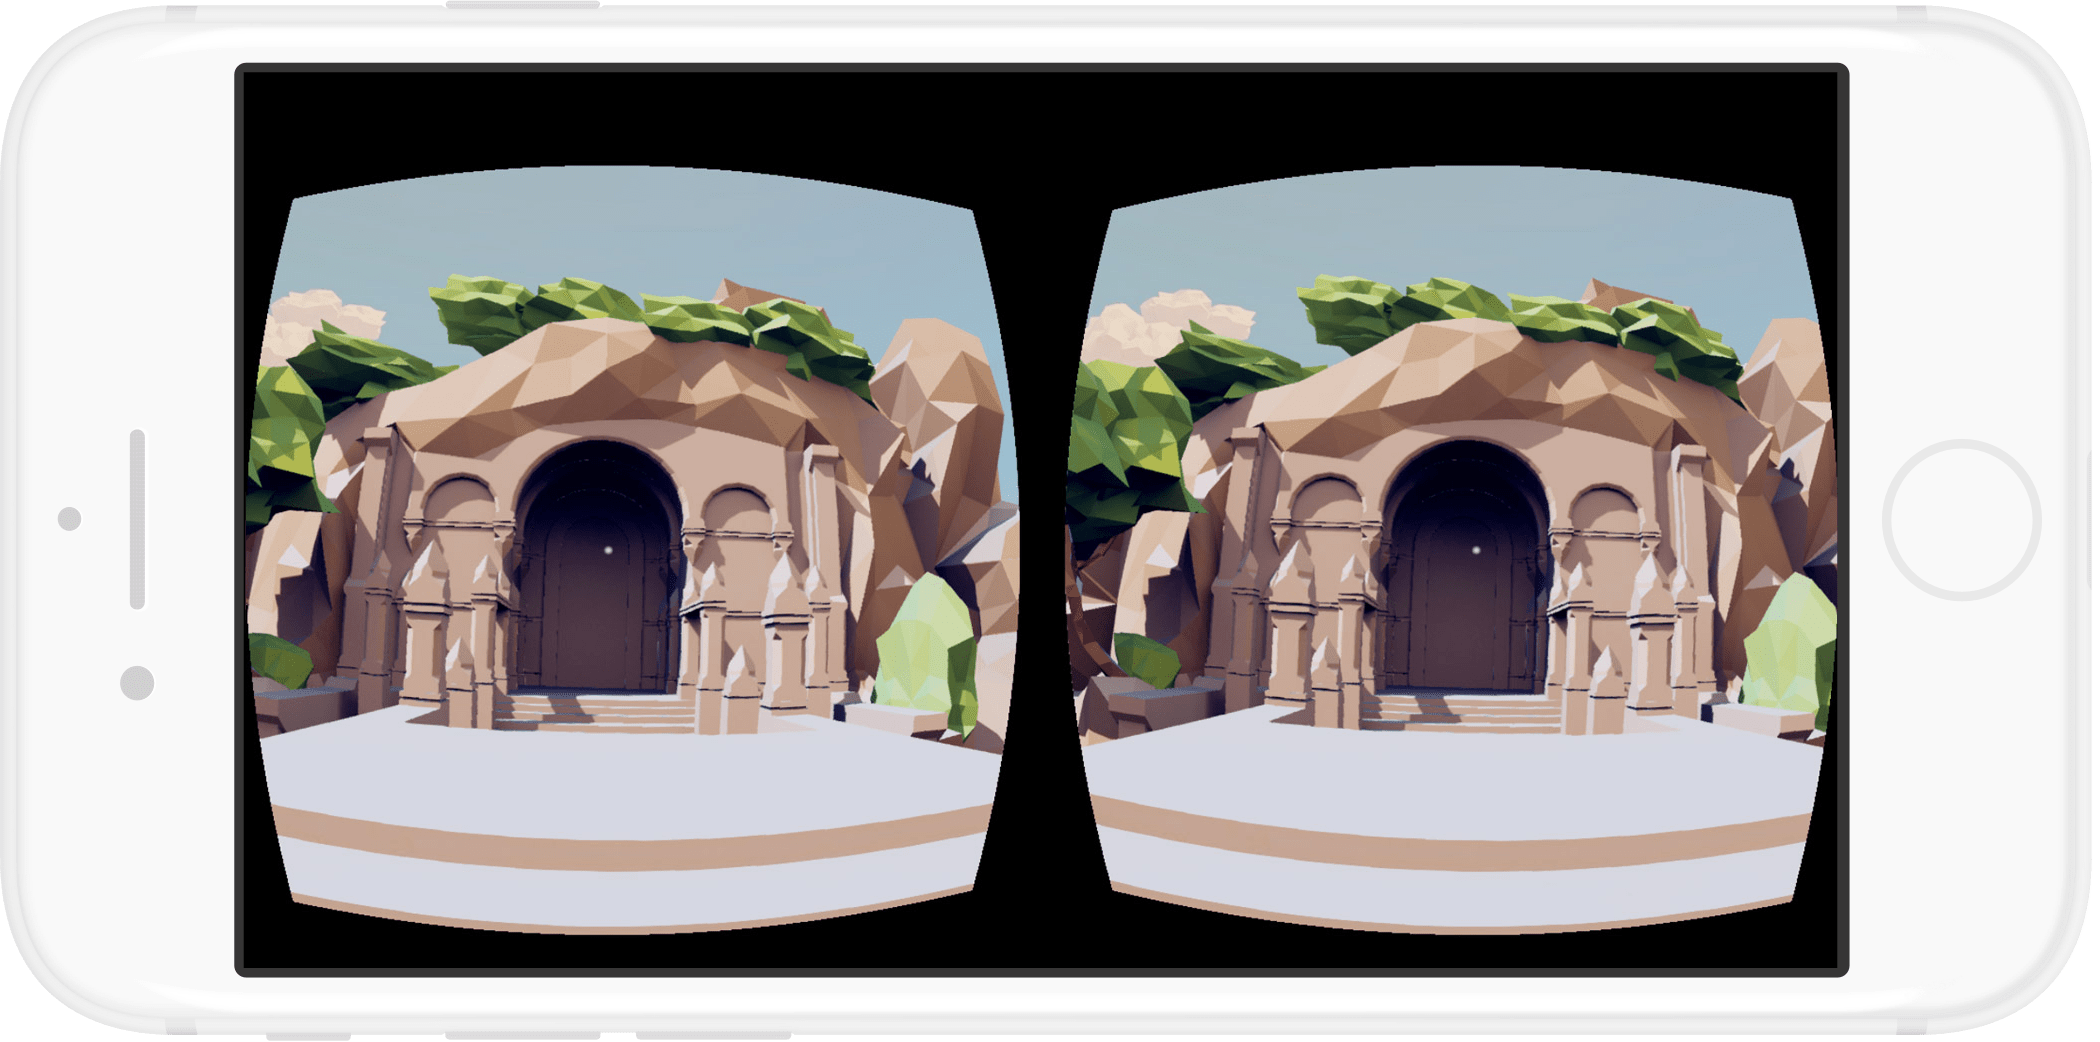 iphone in vr mode